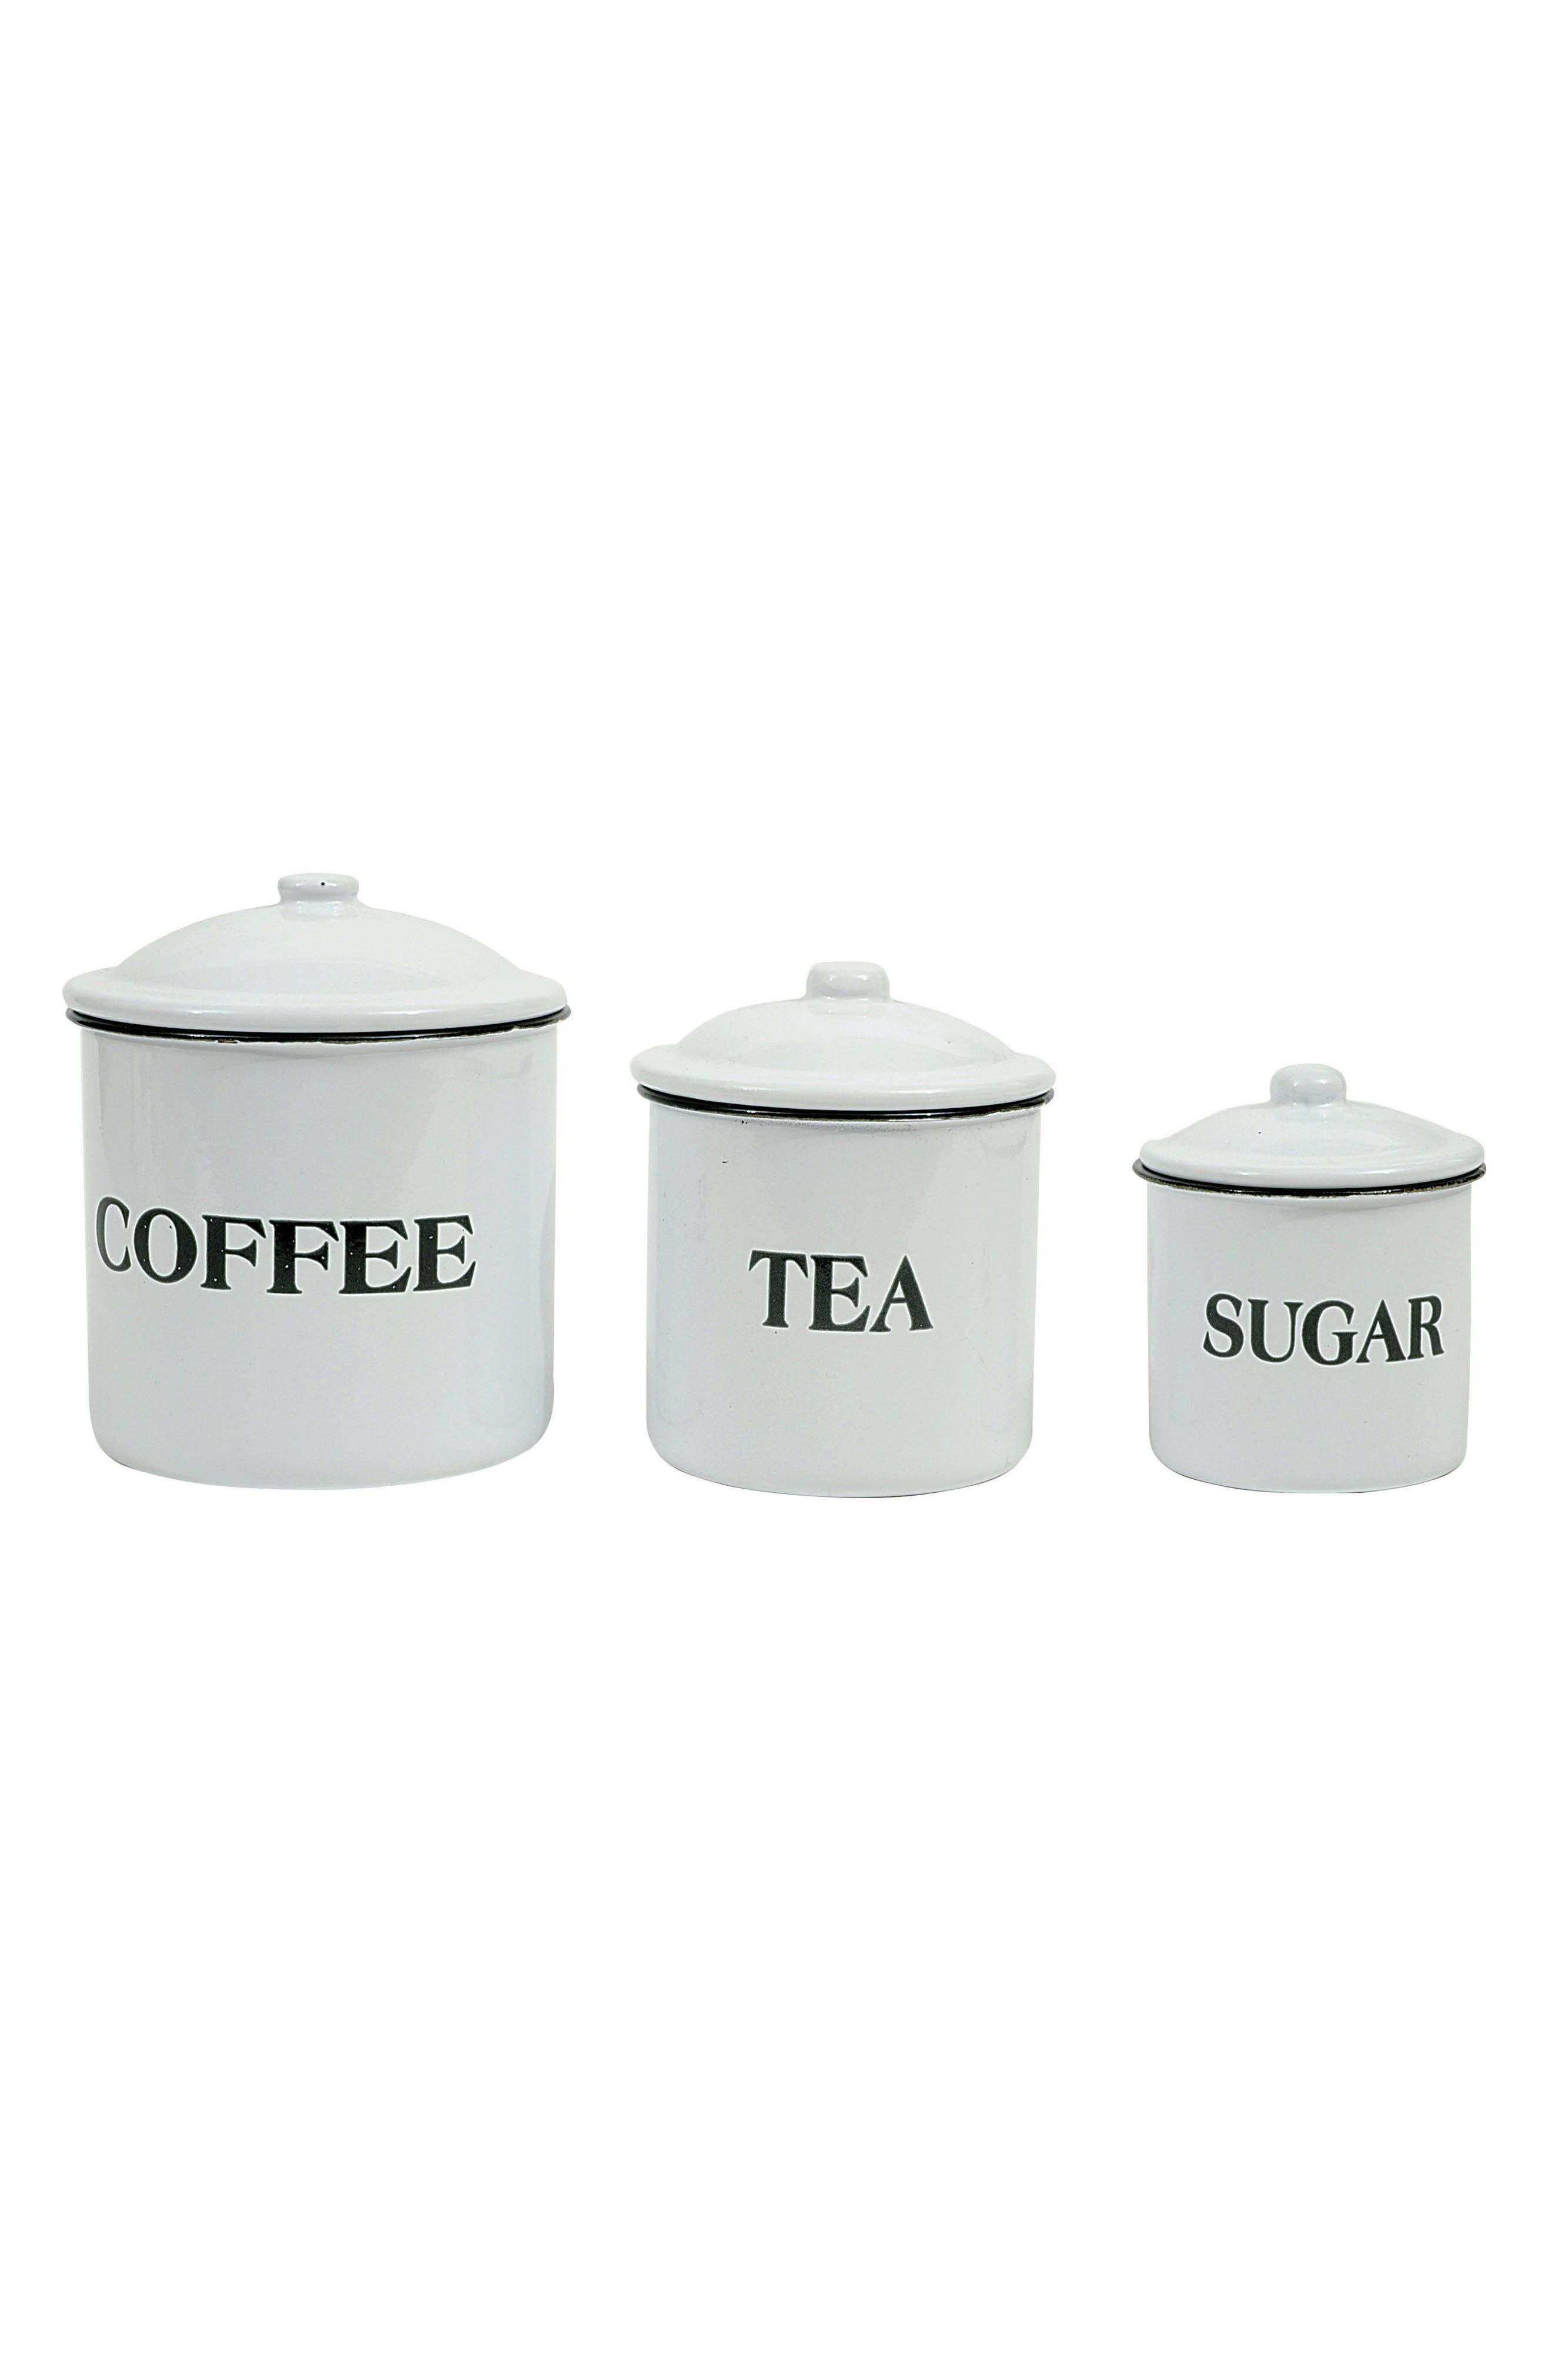 Set of 3 Enamel Containers,                         Main,                         color, White